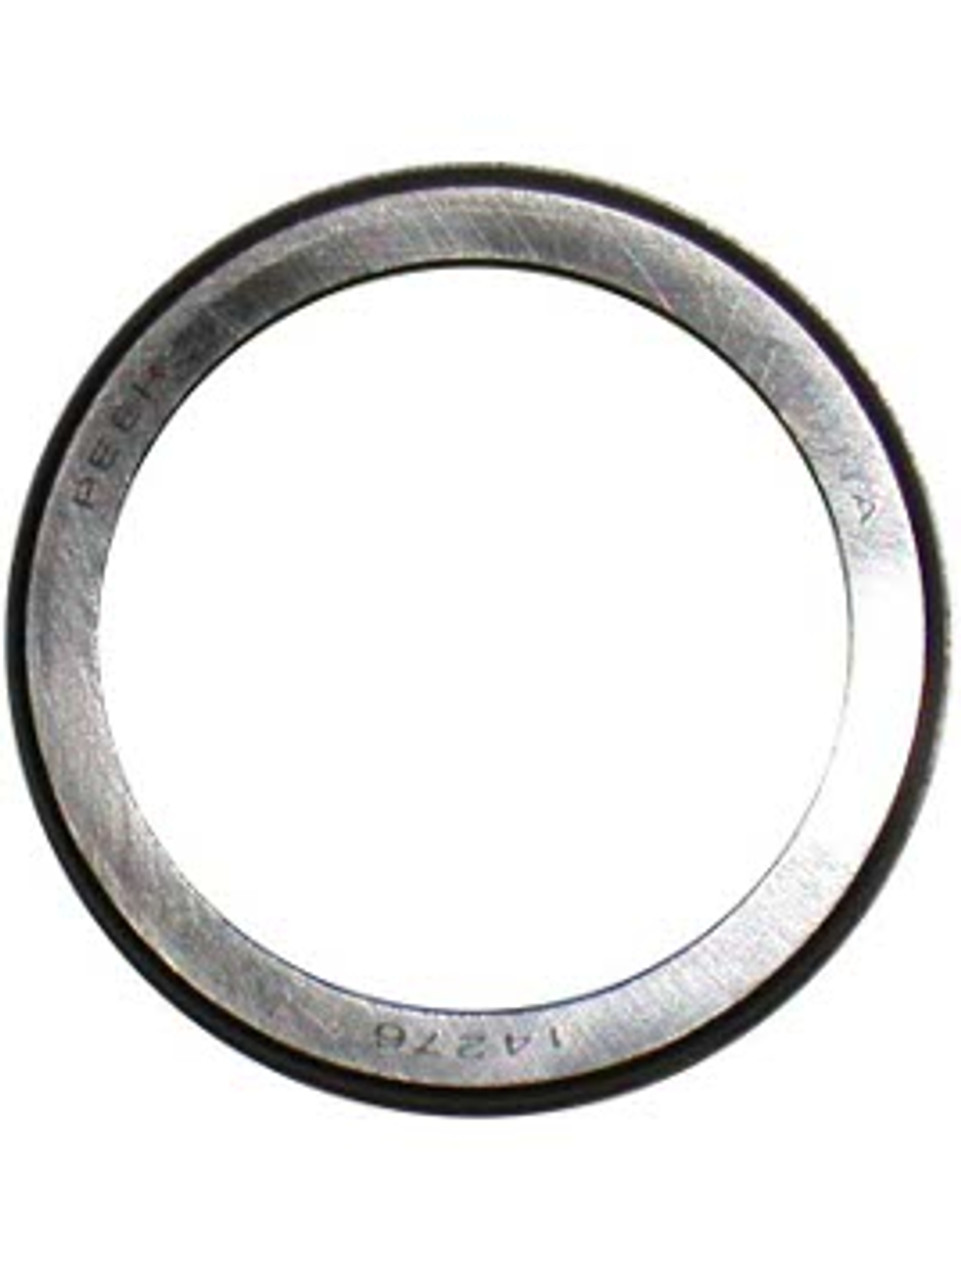 L68110 --- Race (Cup) for Bearing # L68149 for use in UFP hubs